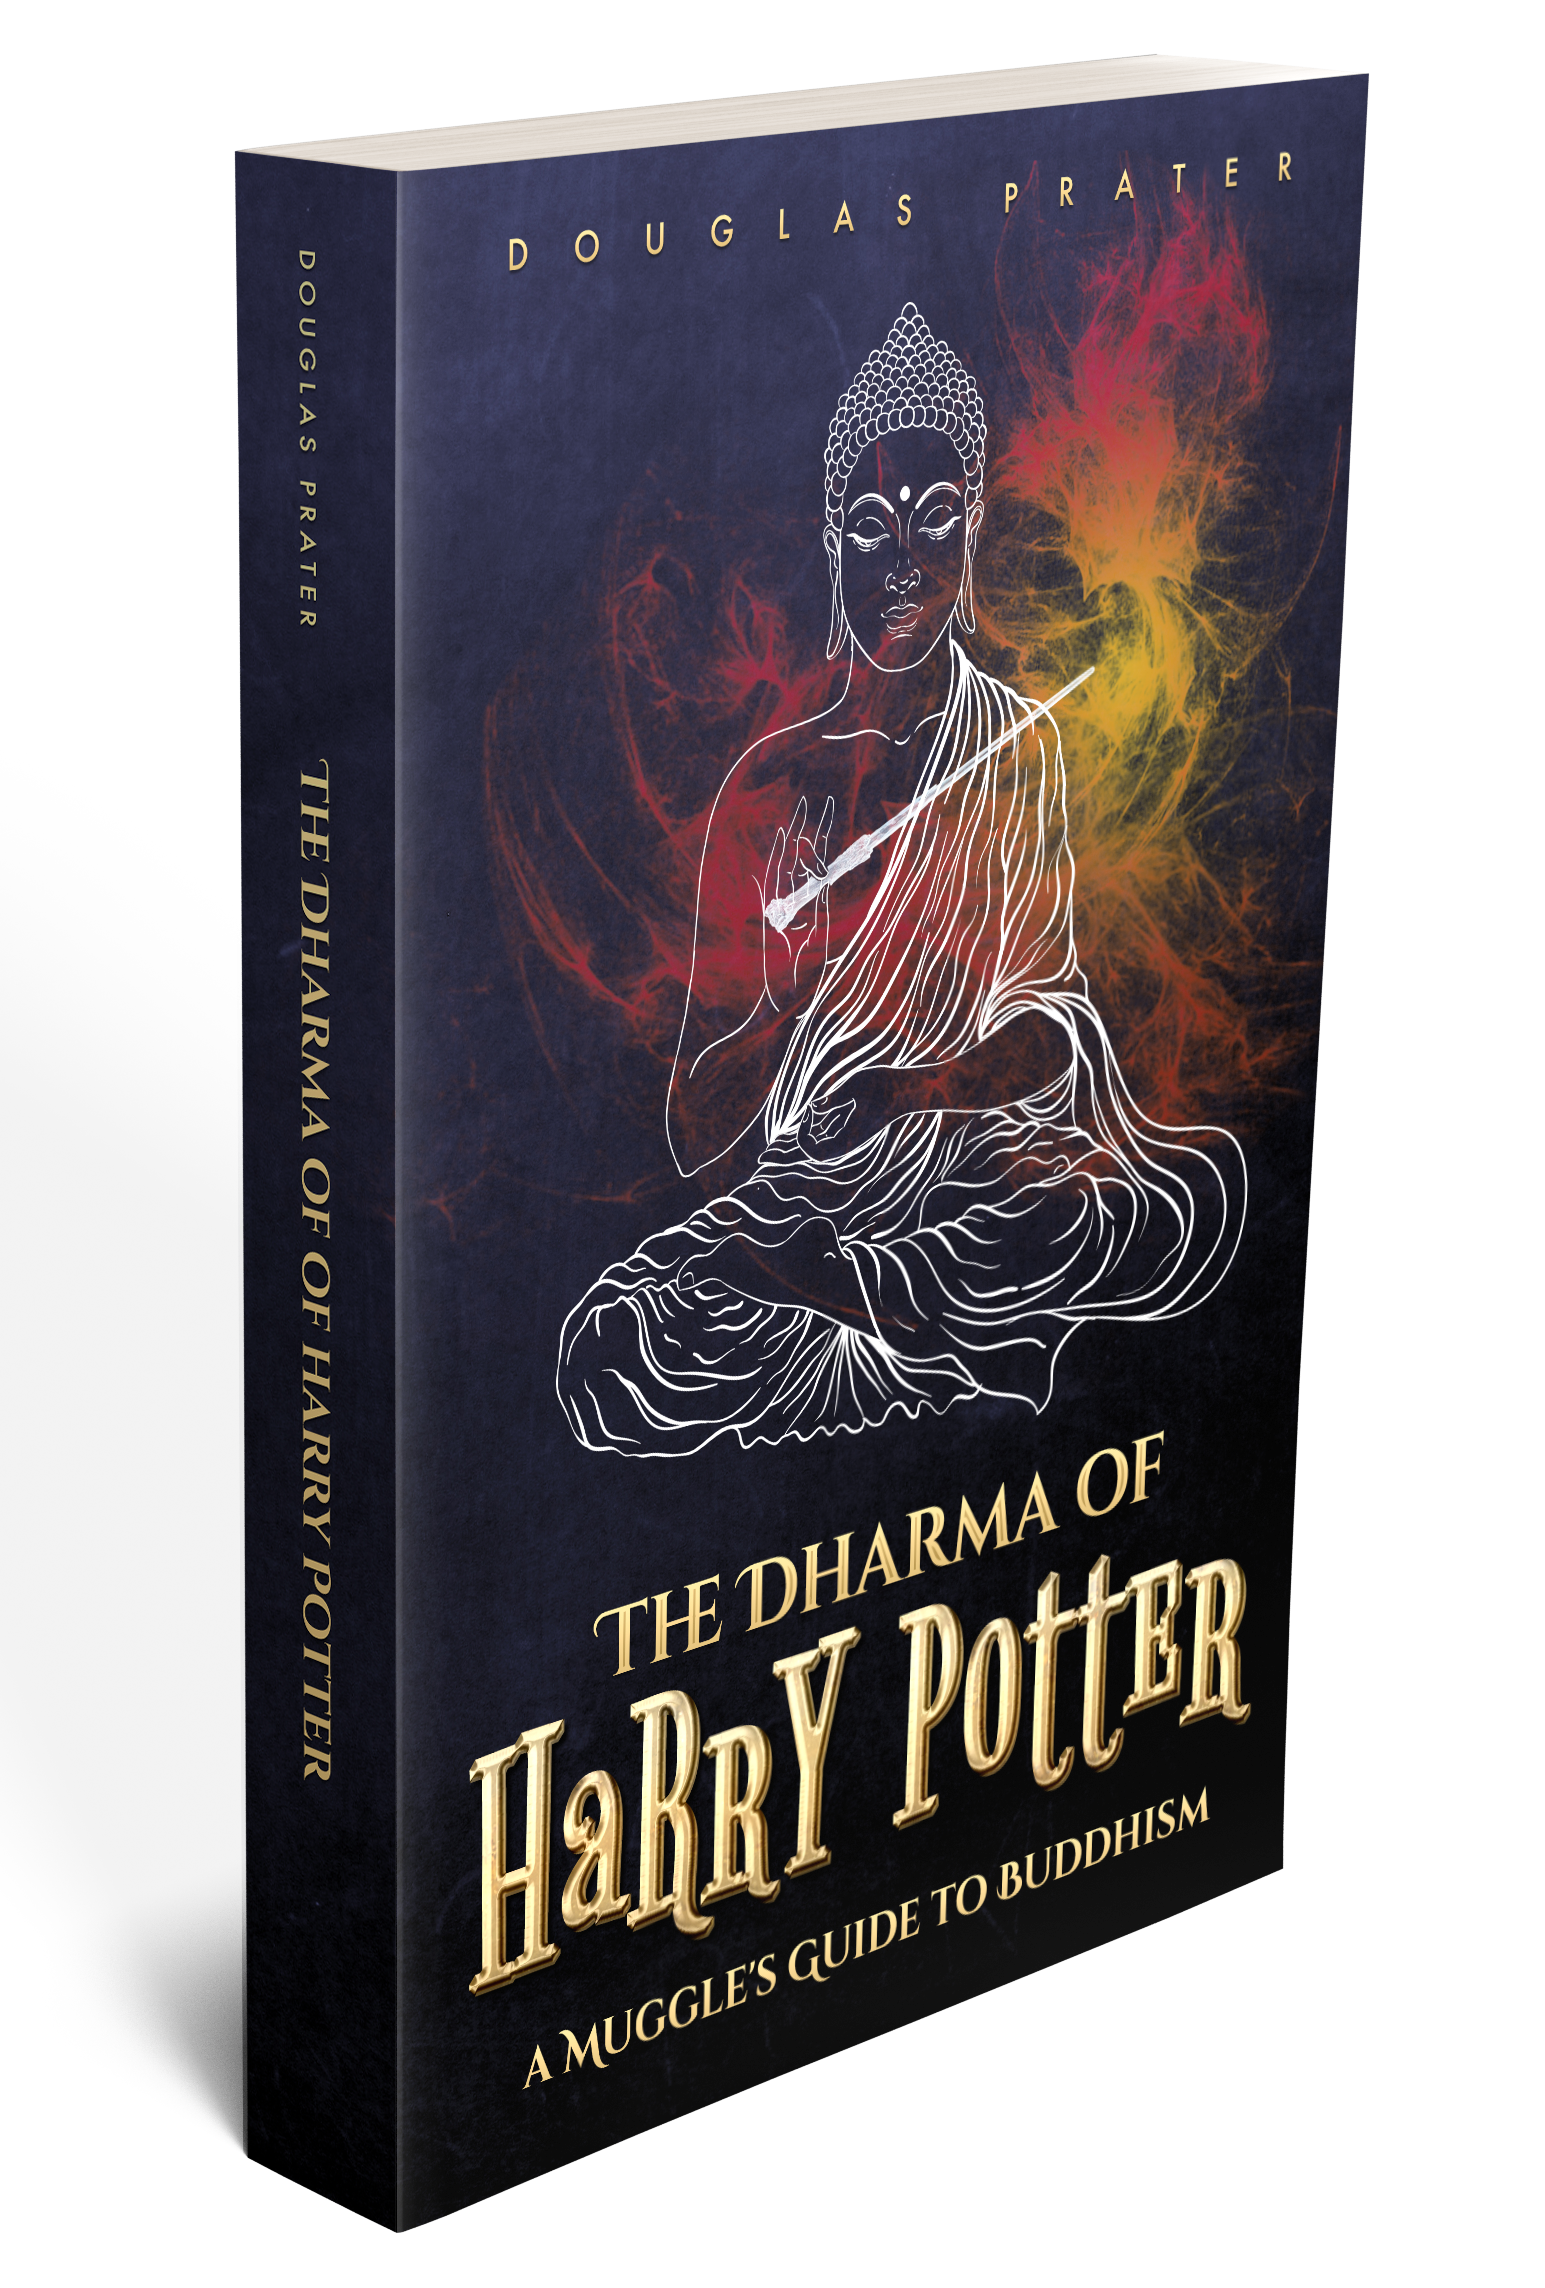 The Dharma of Harry Potter